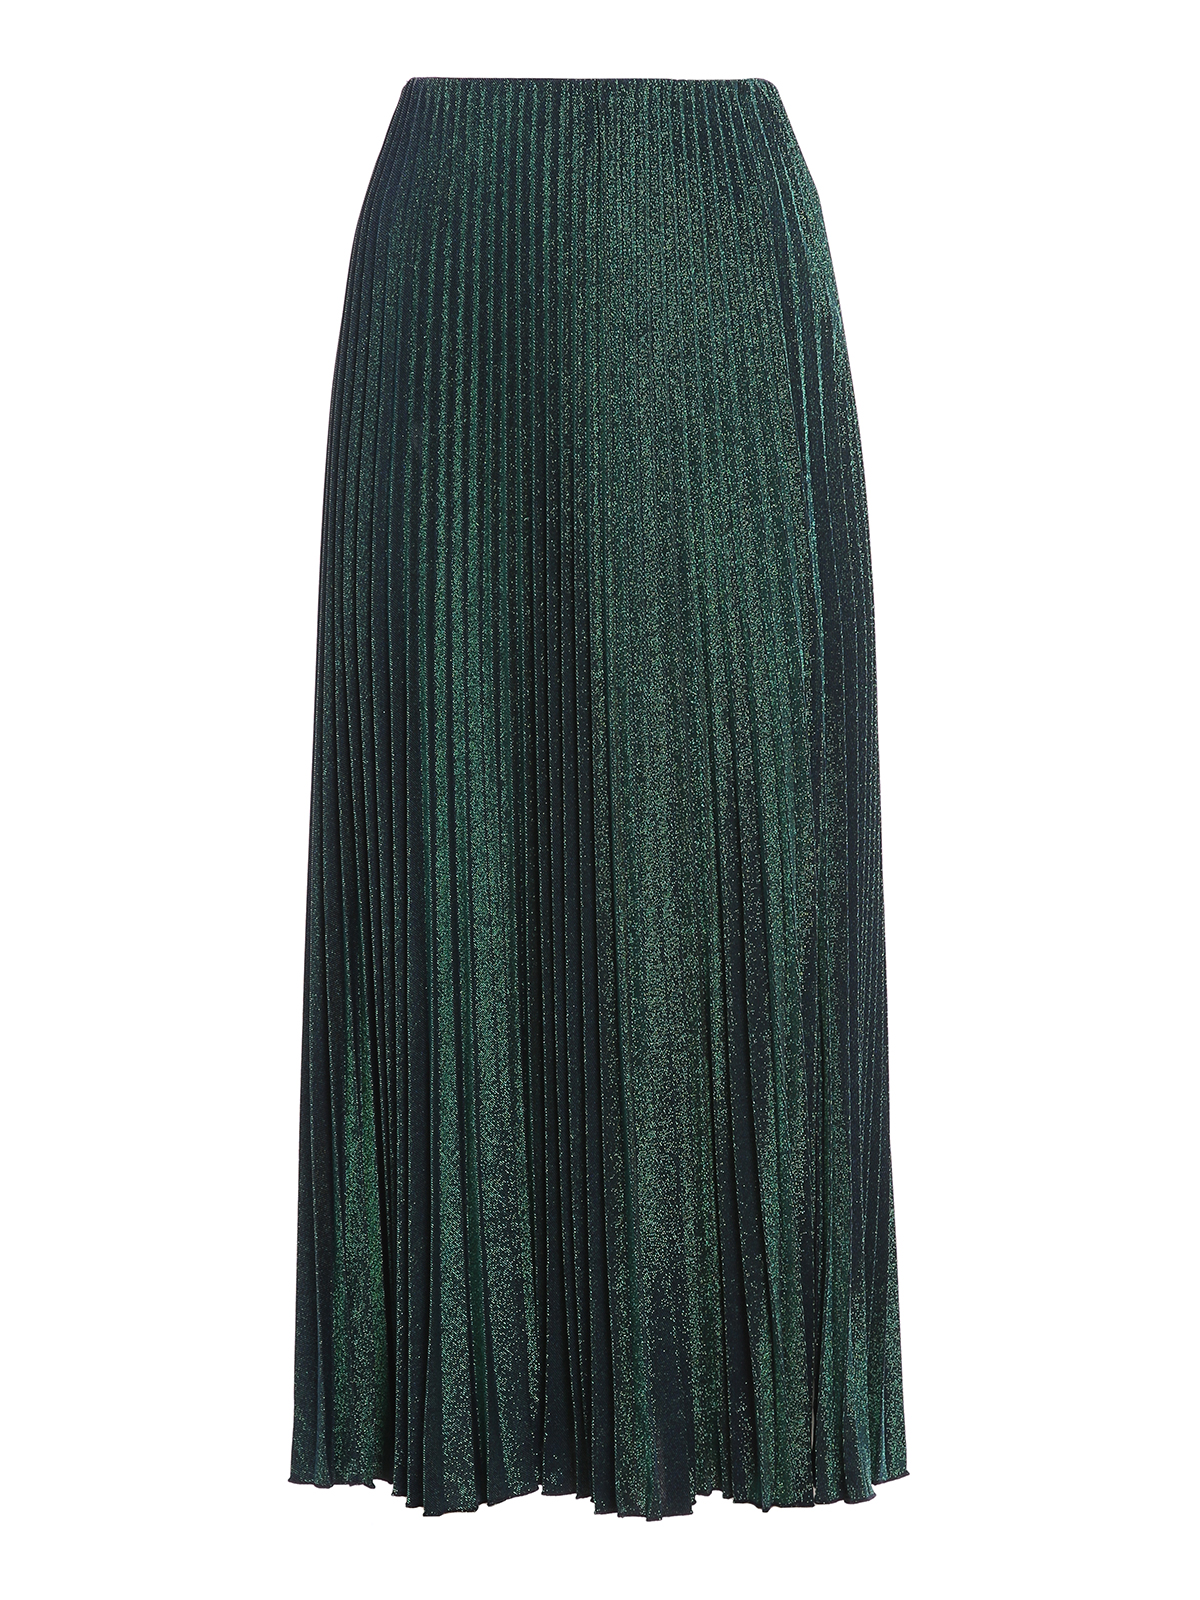 M Missoni LONG PLEATED SKIRT